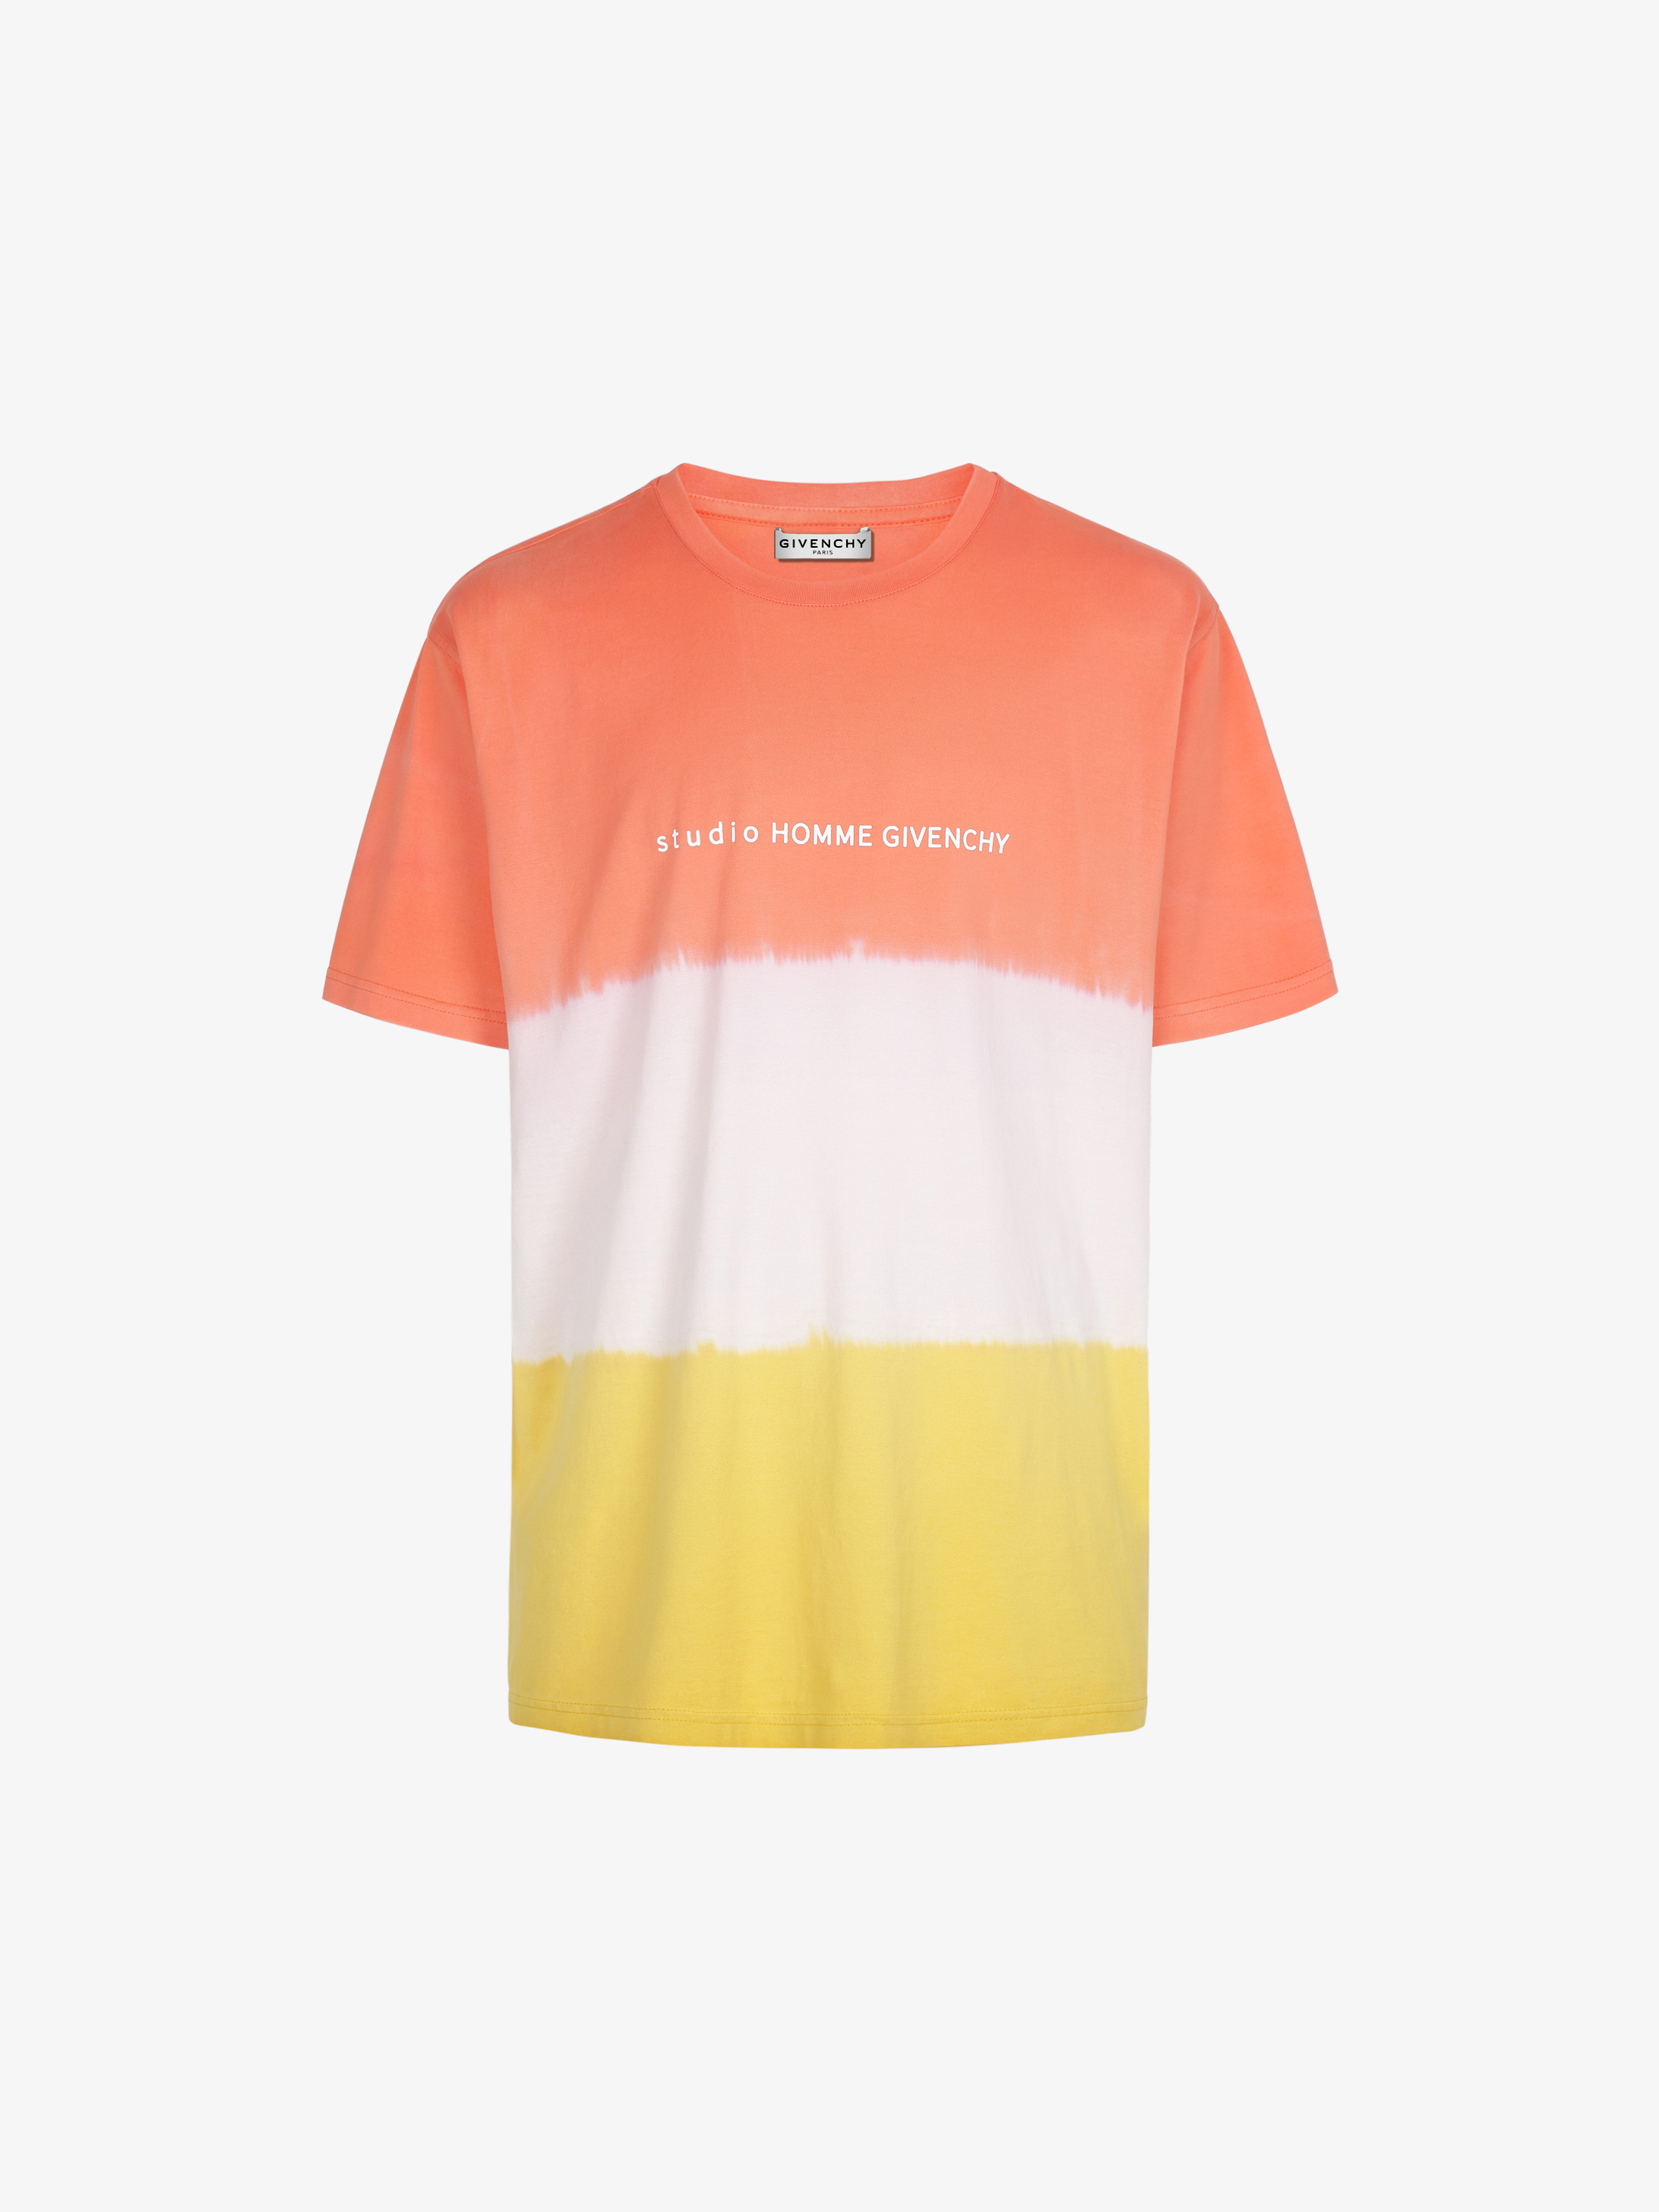 Studio Homme faded effect t-shirt